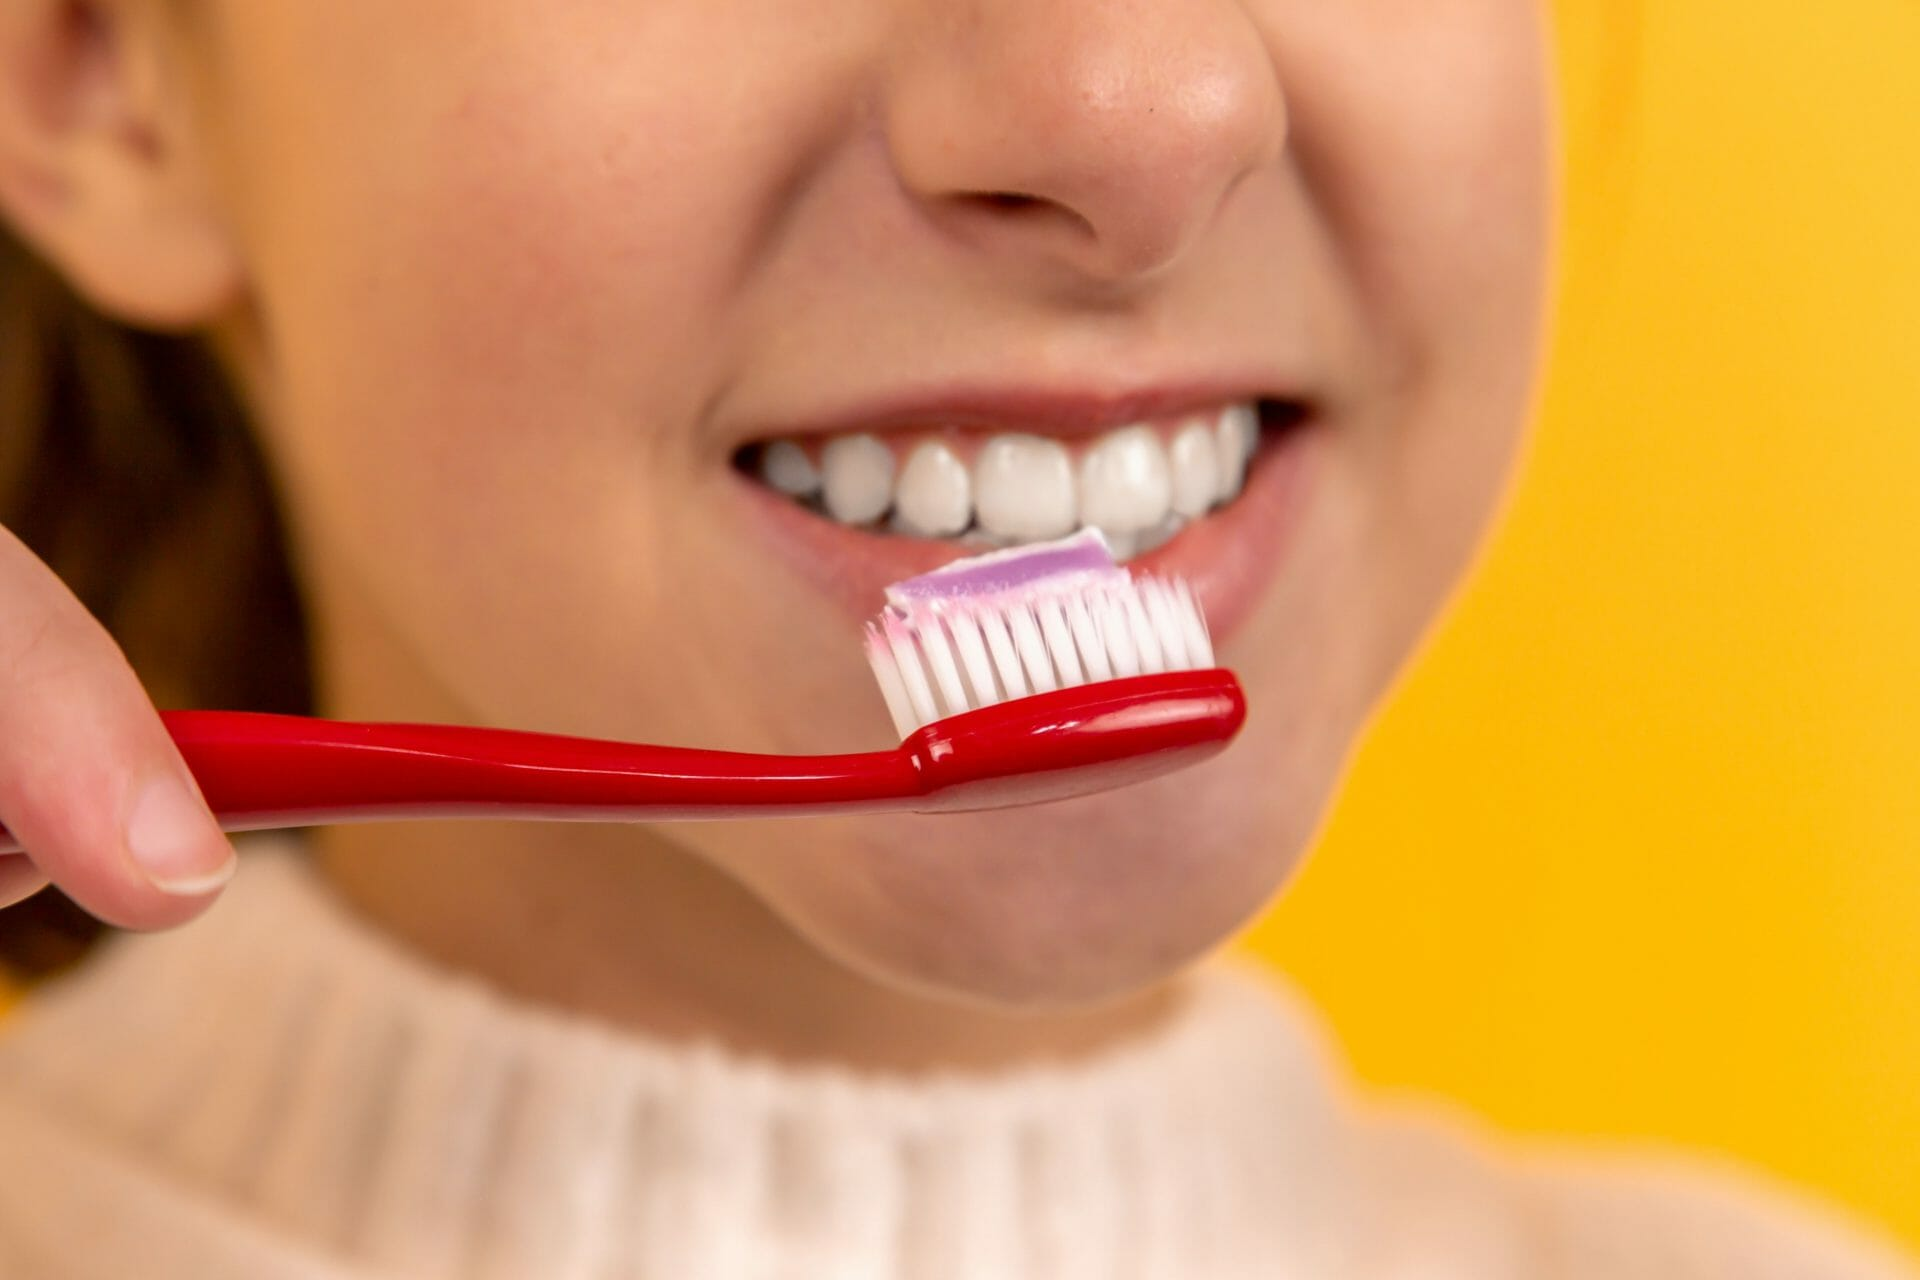 The Best Dentist Recommended Toothpaste